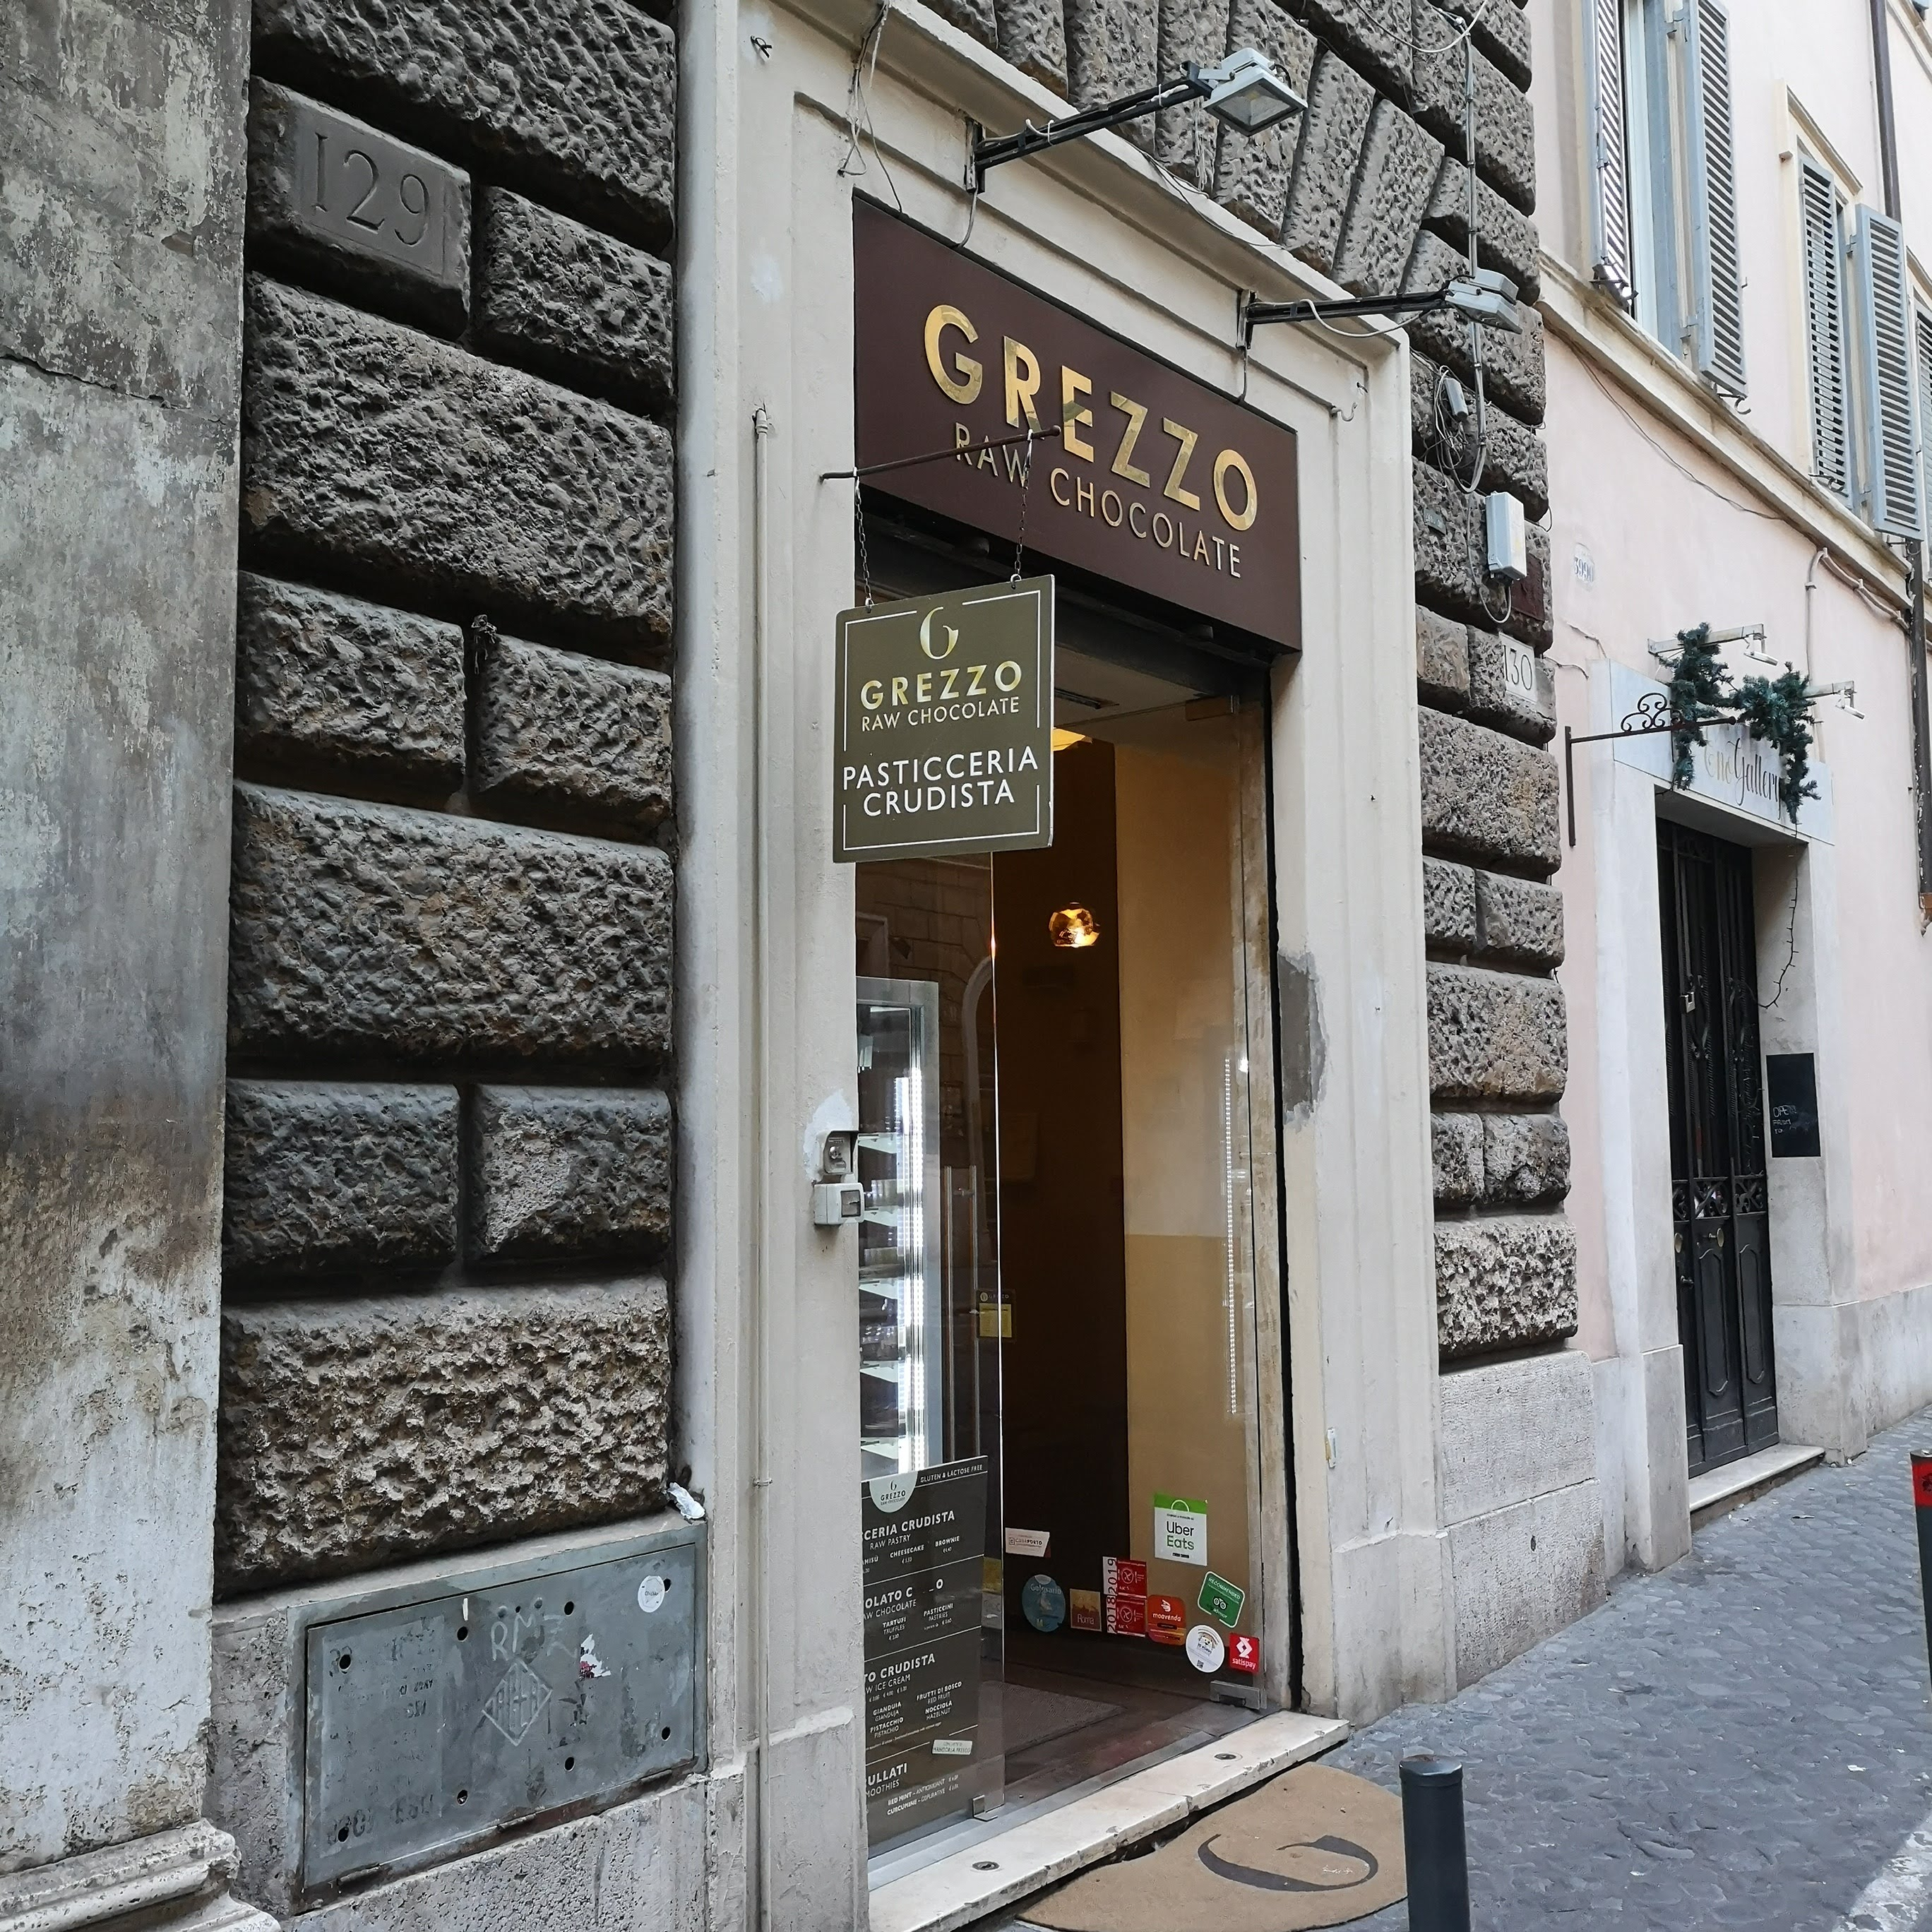 Grezzo – Raw Chocolate gelateria roma